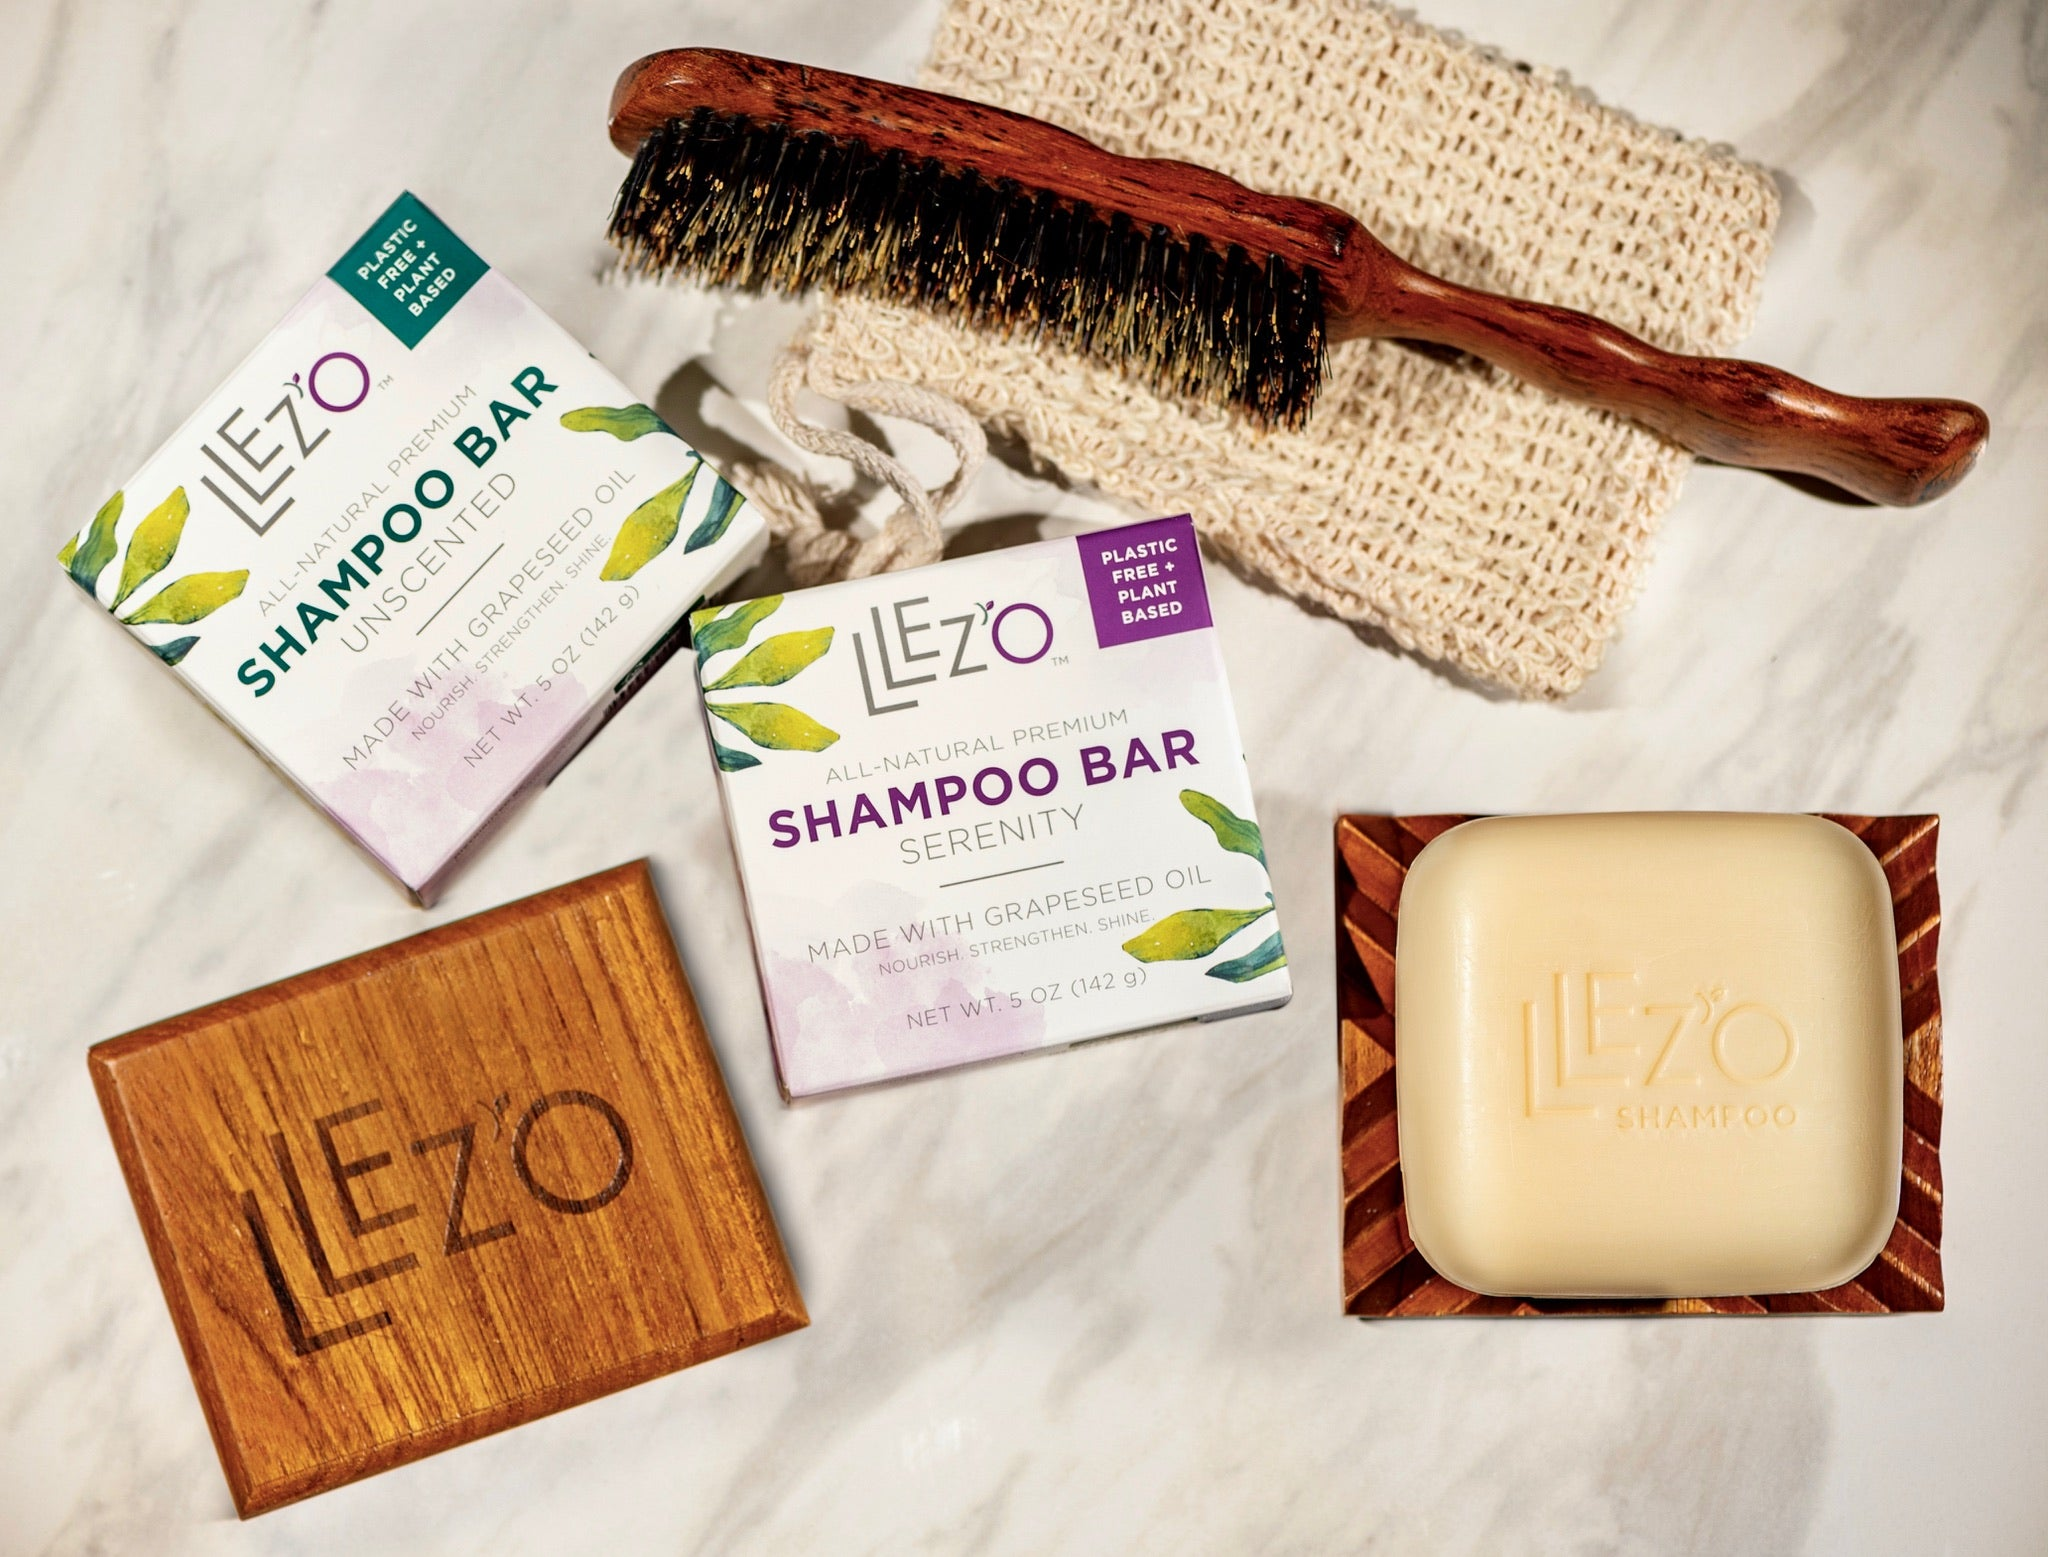 LLez'o Sulfate-Free, Paraben-Free Shampoo Soap Bars